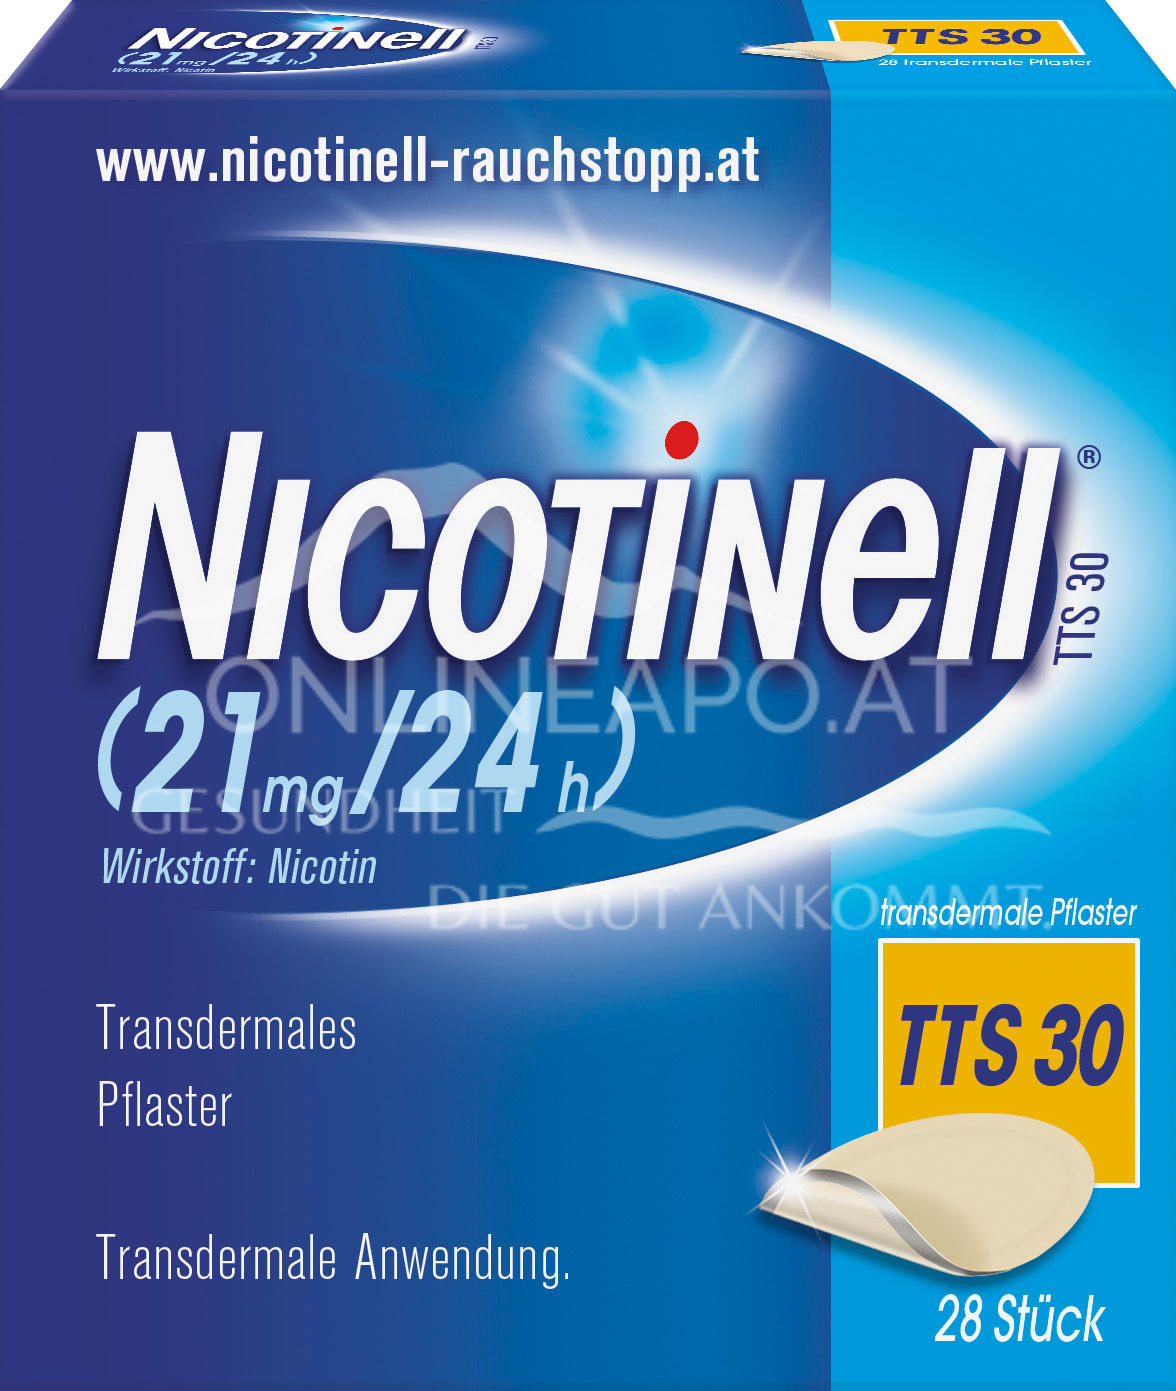 Nicotinell® TTS 30 (21 mg/24 h) transdermale Pflaster